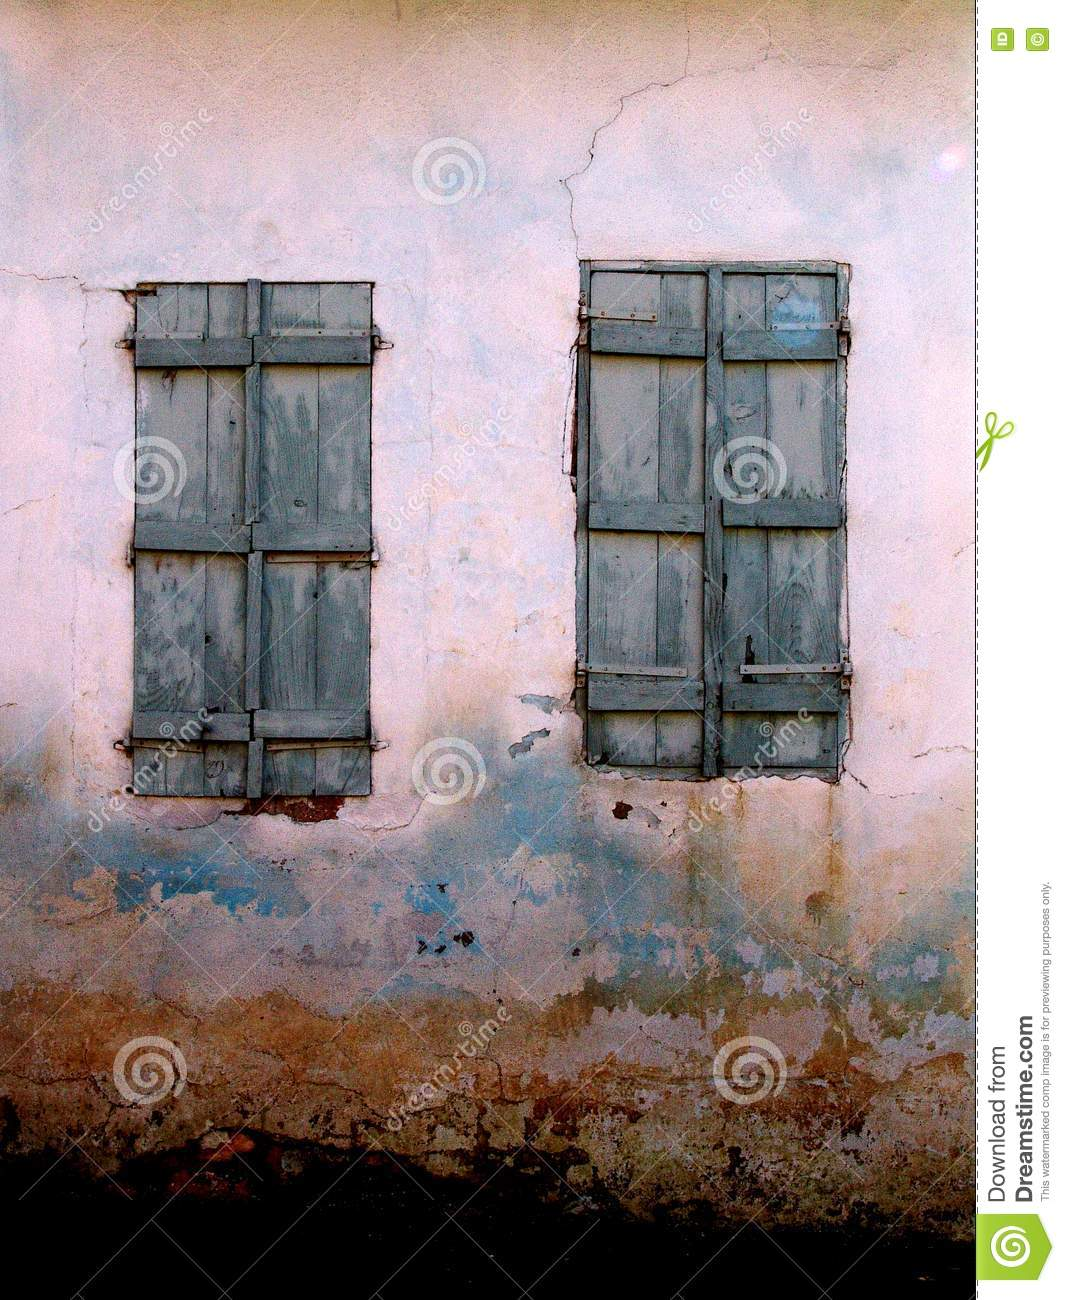 Weathered Windows Stock Photo. Image Of Weathered